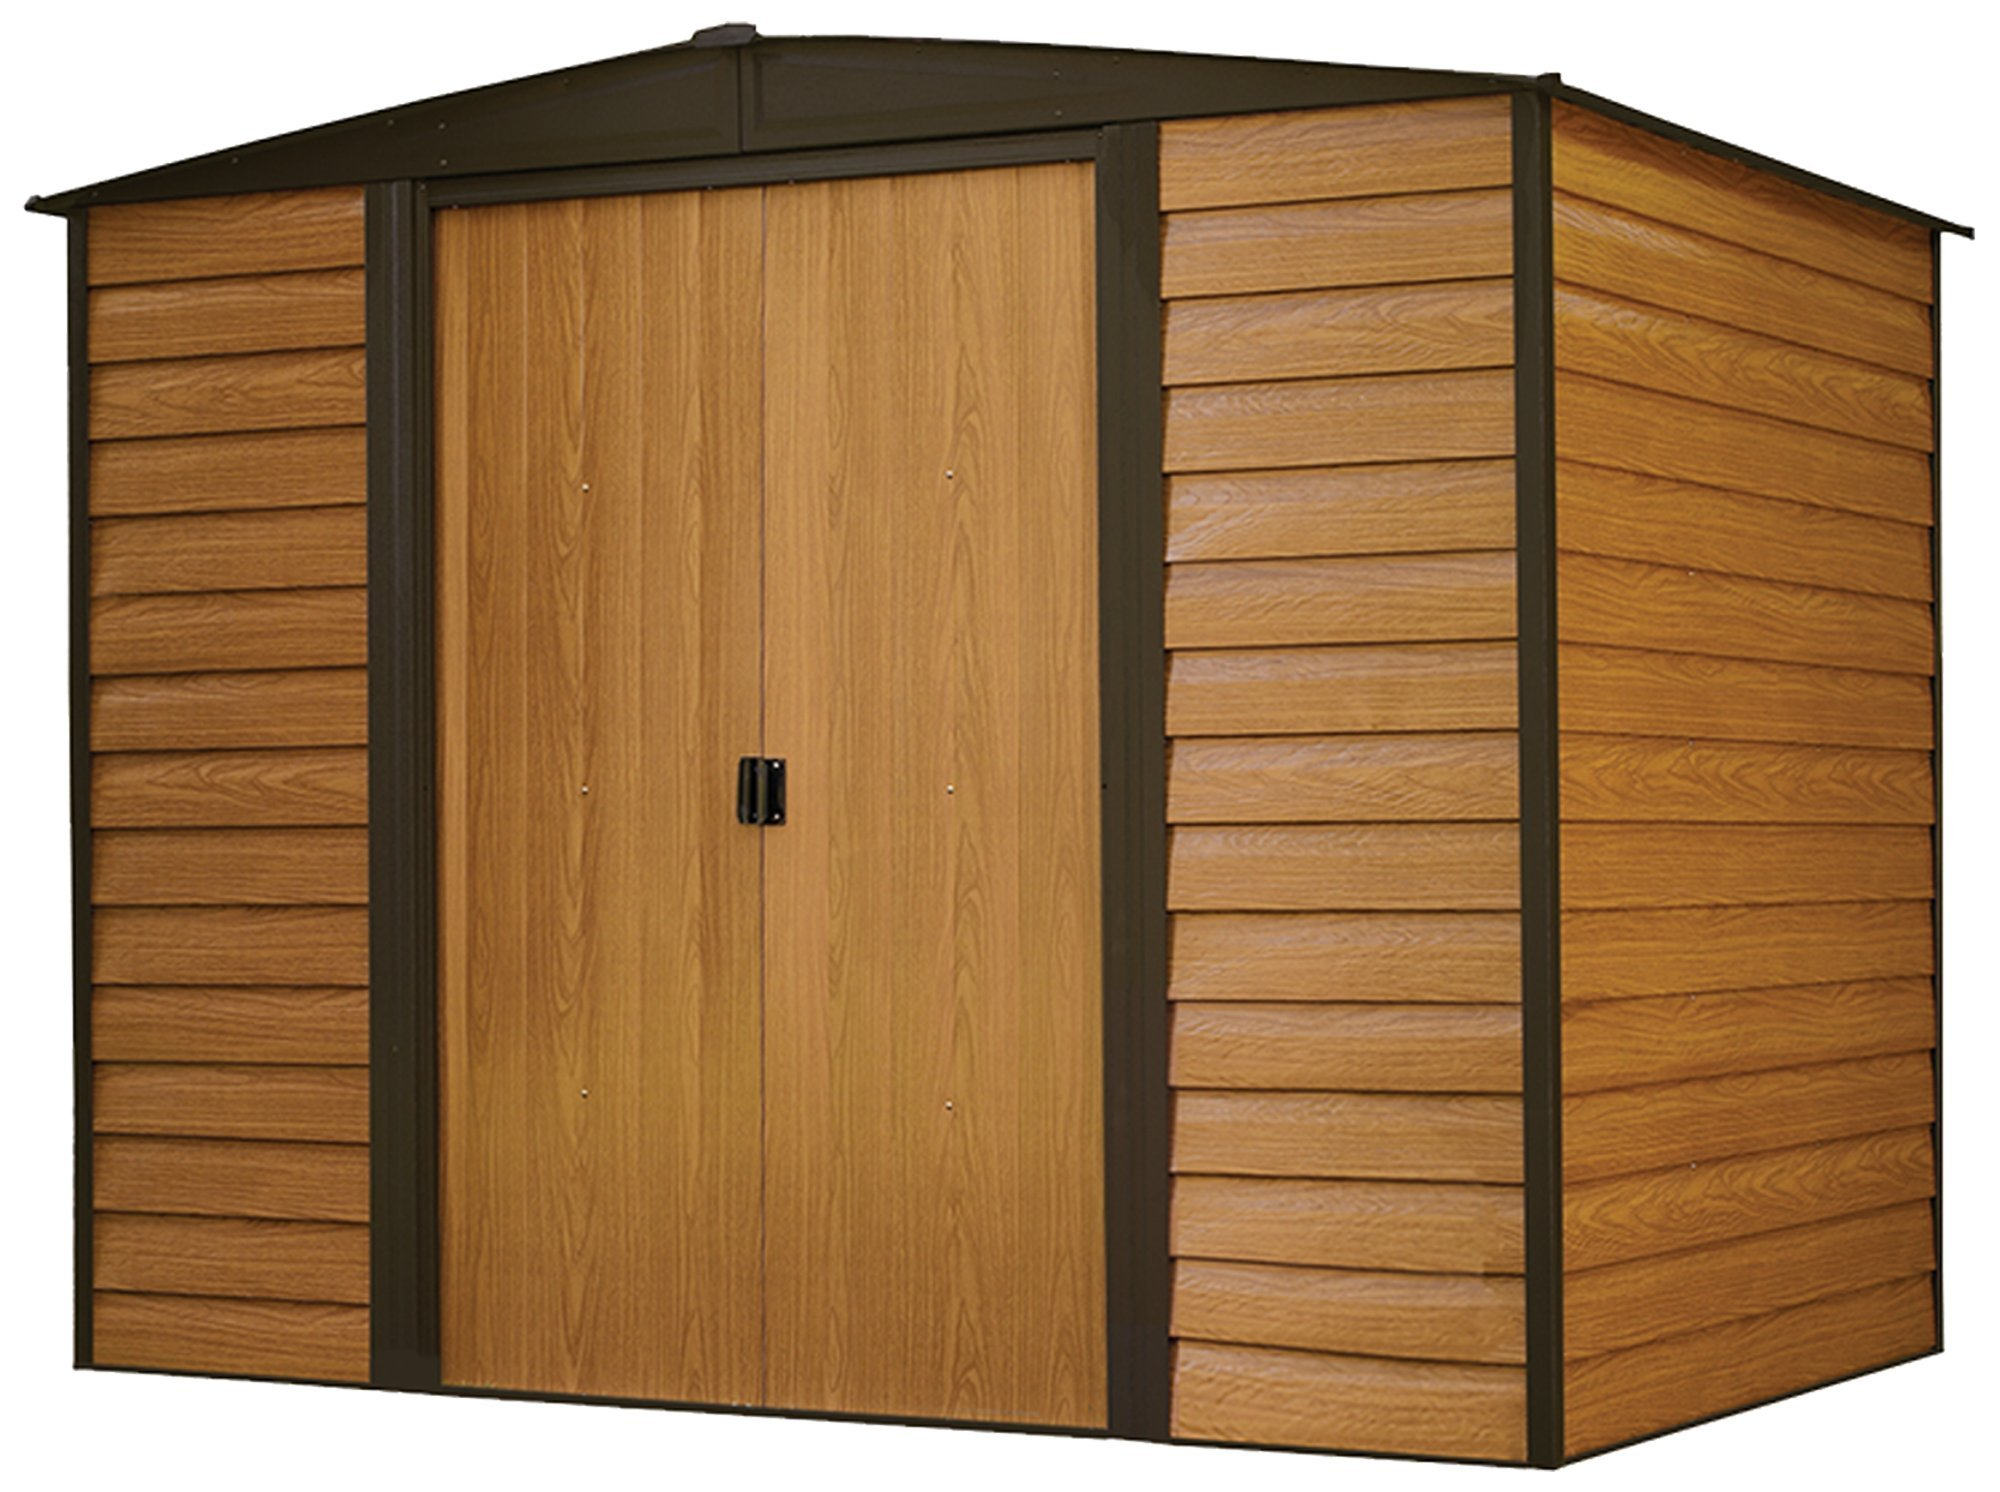 Arrow WR86 Woodridge EG Steel Storage Shed, 8 by 6-Feet